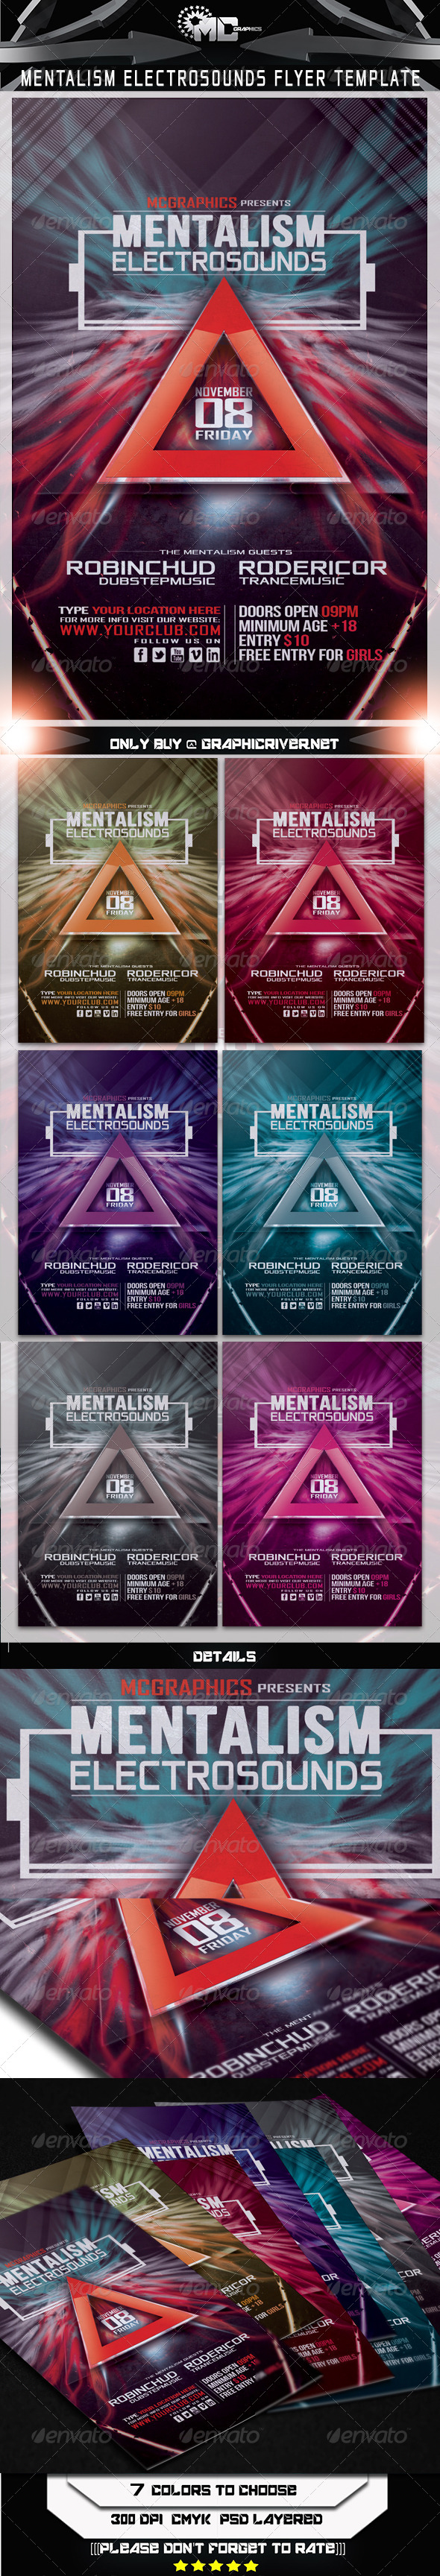 GraphicRiver Mentalism Electro Sounds Flyer Template 5684881